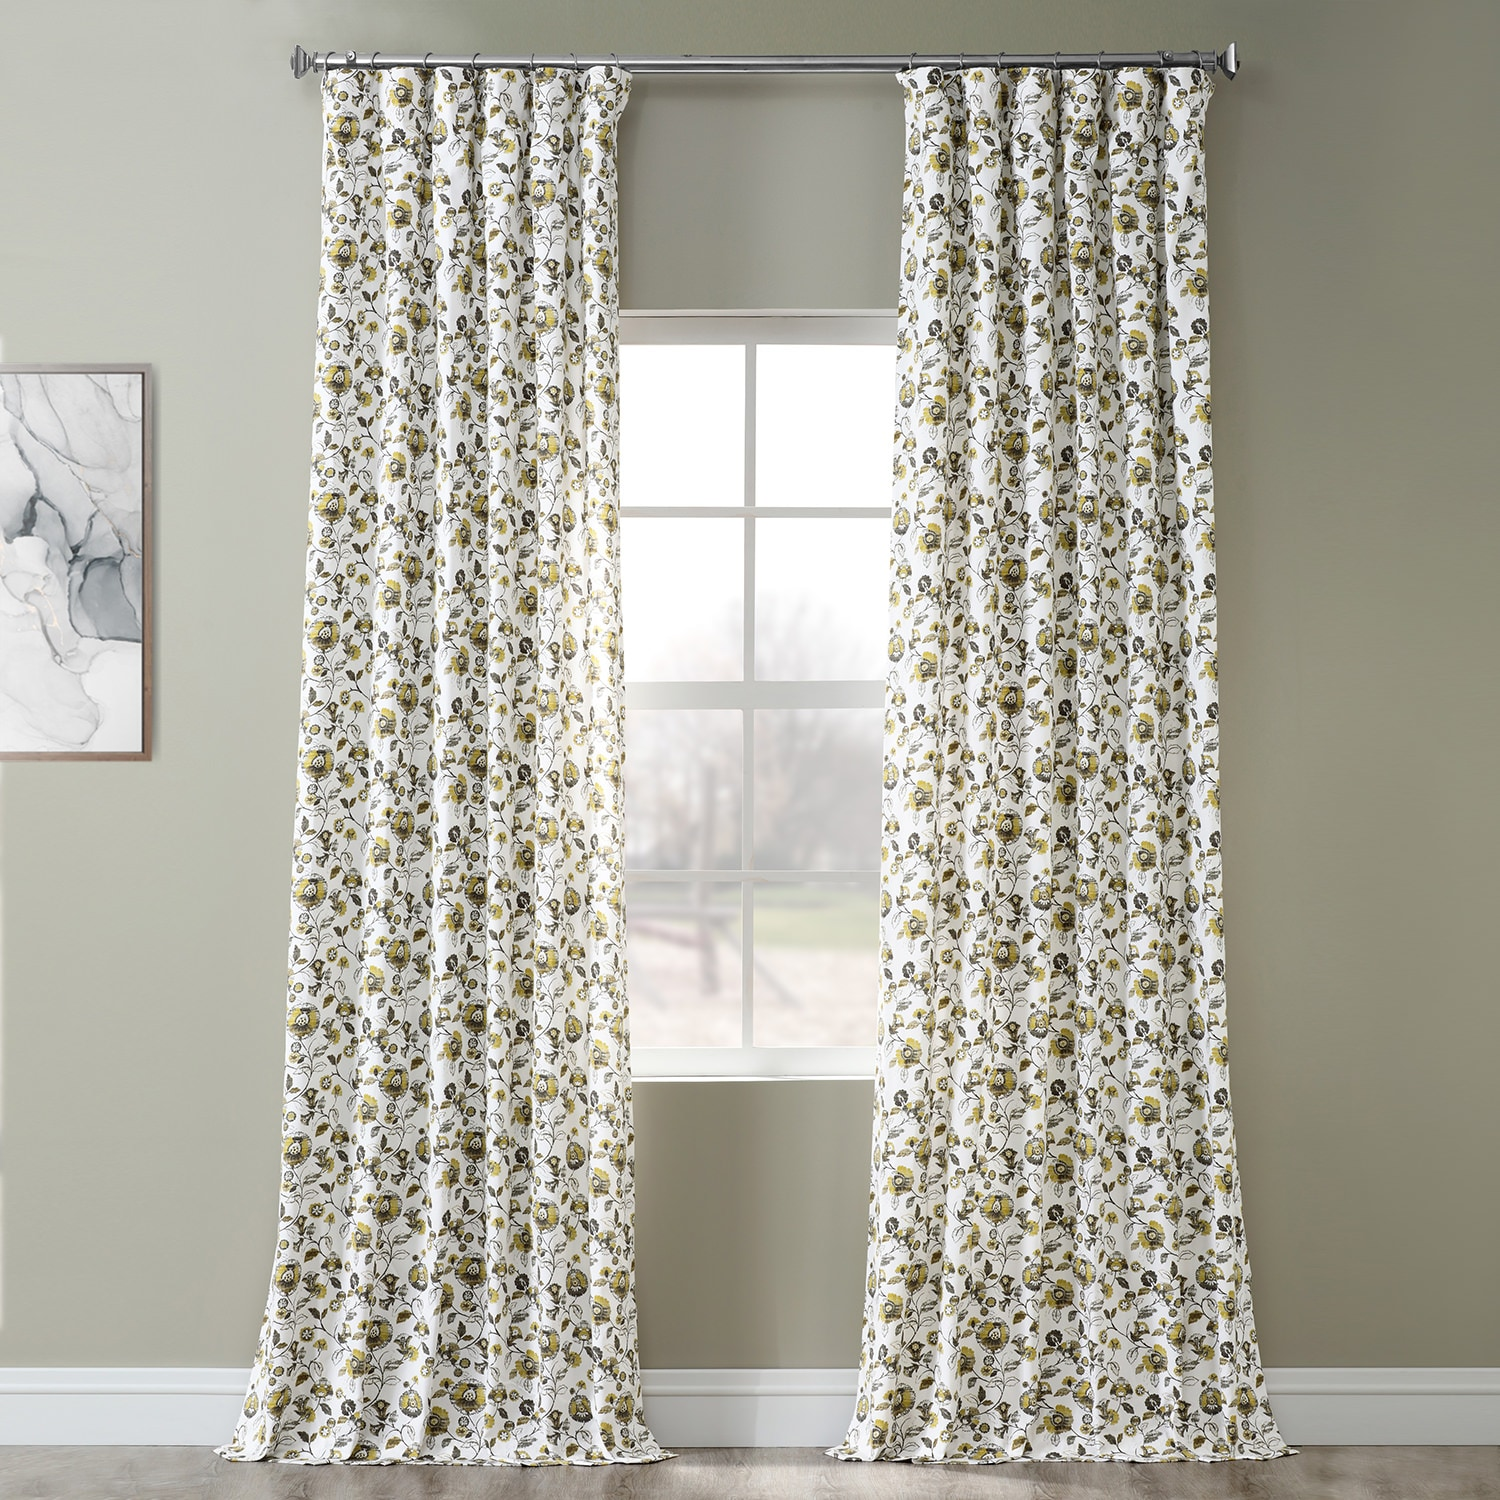 Madison Gold and Grey Digital Printed Cotton Twill Curtain